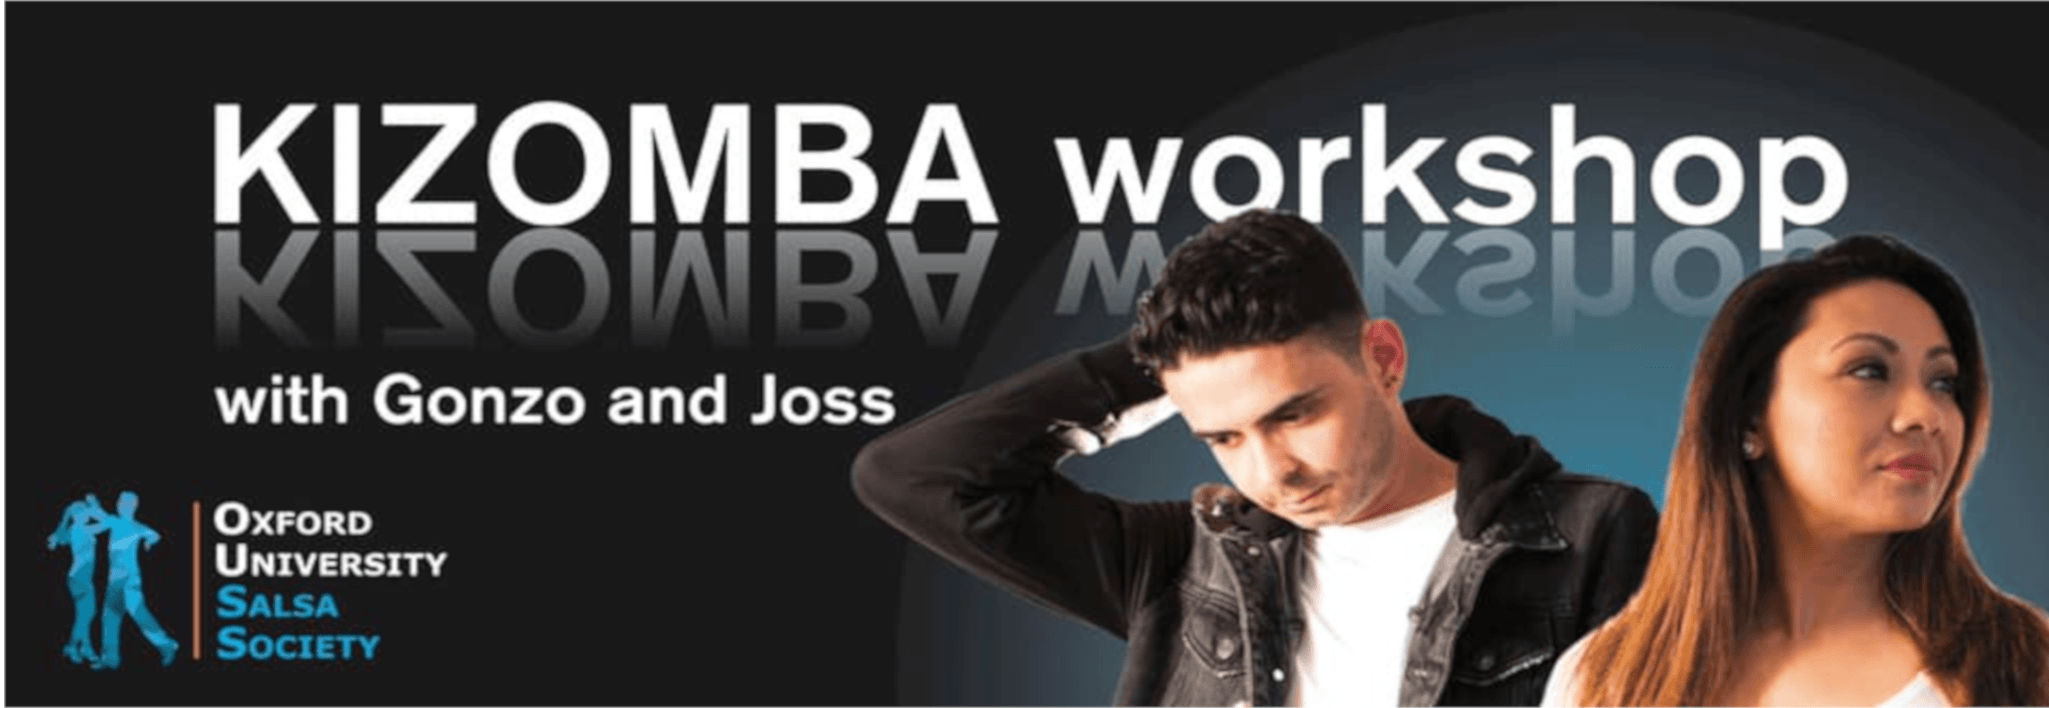 Kizomba Workshop